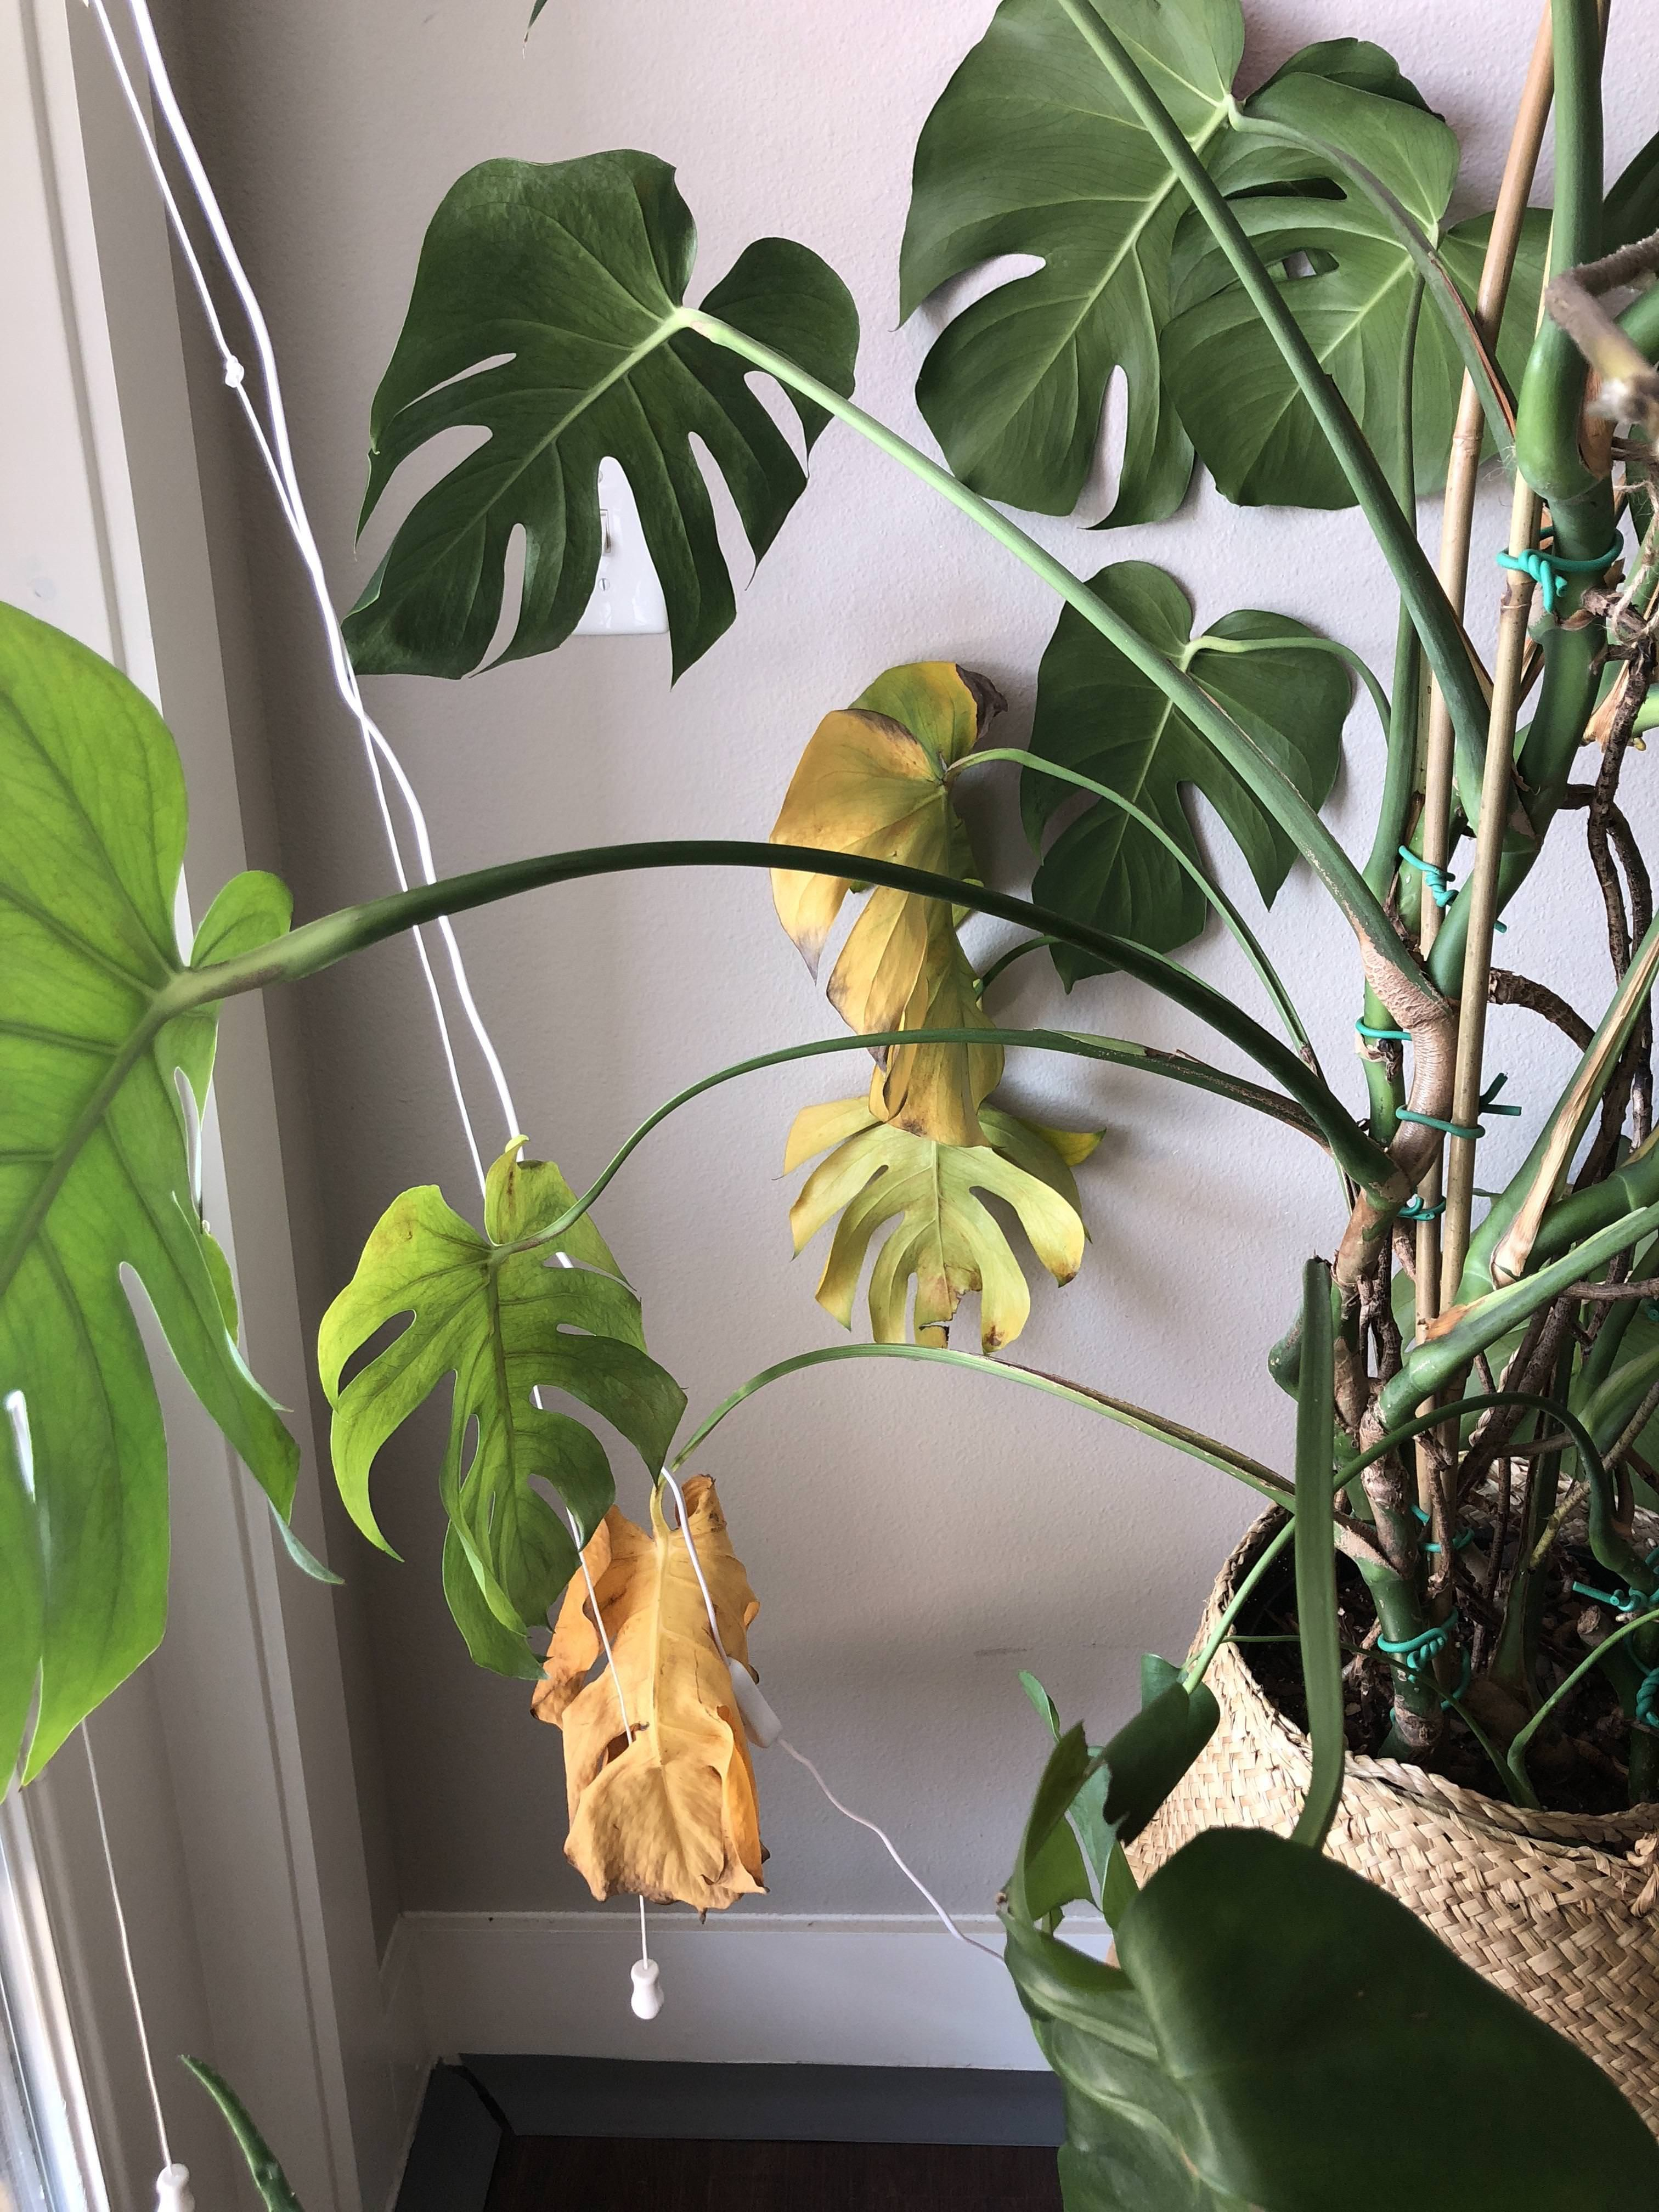 Established Monstera Lower Leaves Yellowing And Dropping After Repotting And Pruning Roots A Few Months Ago Still Healthy Living Lifestyle House Plants Plants